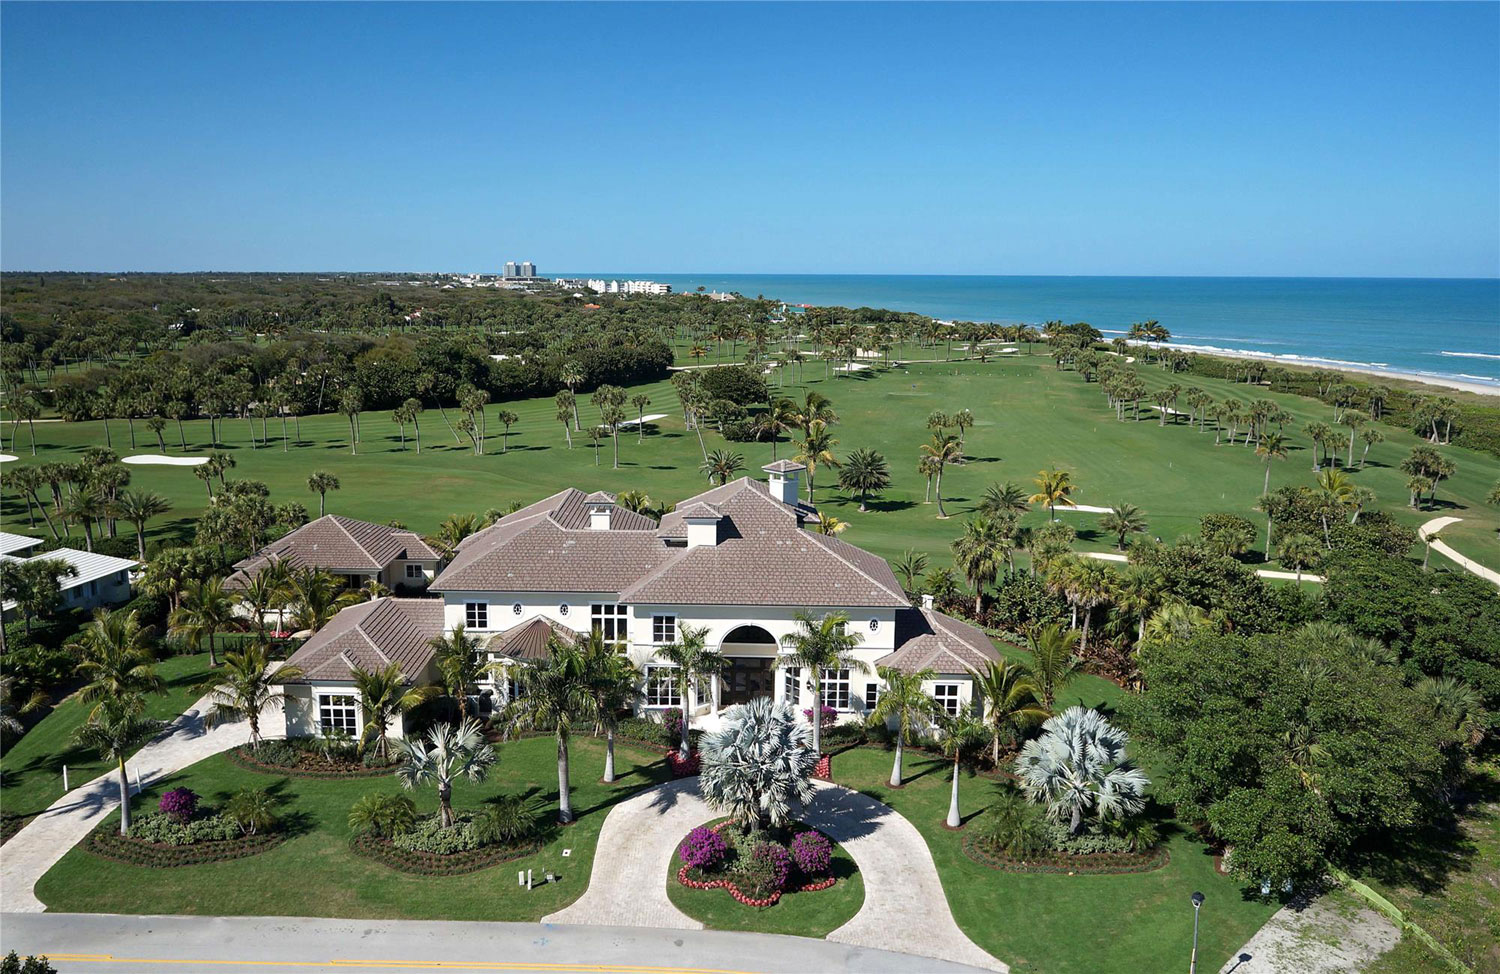 Completed in 2014, the luxurious estate includes a three-story, 14,997-square-foot main house, a separate guest house, and beautifully landscaped grounds. The property boasts panoramic views of emerald fairways and aquamarine waters.